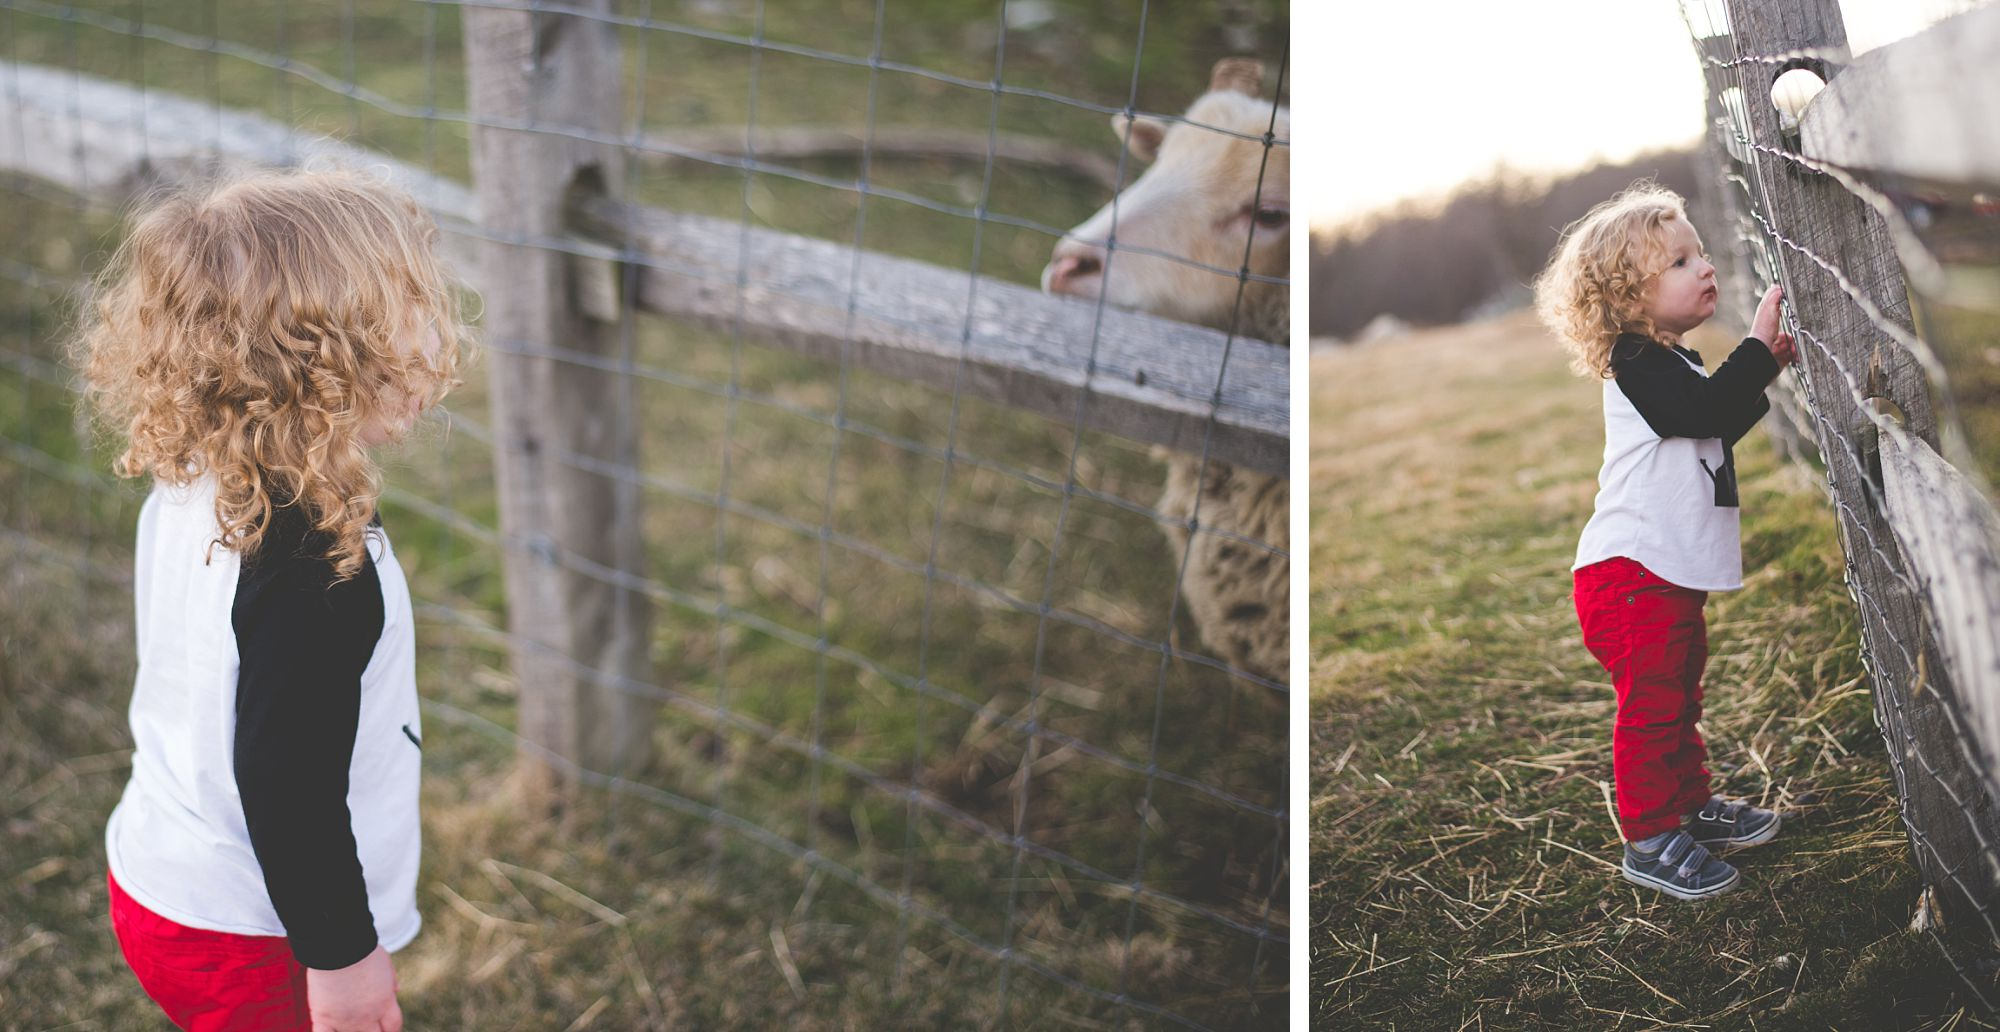 Two year old toddler makes friend with sheep behind a wooden fence